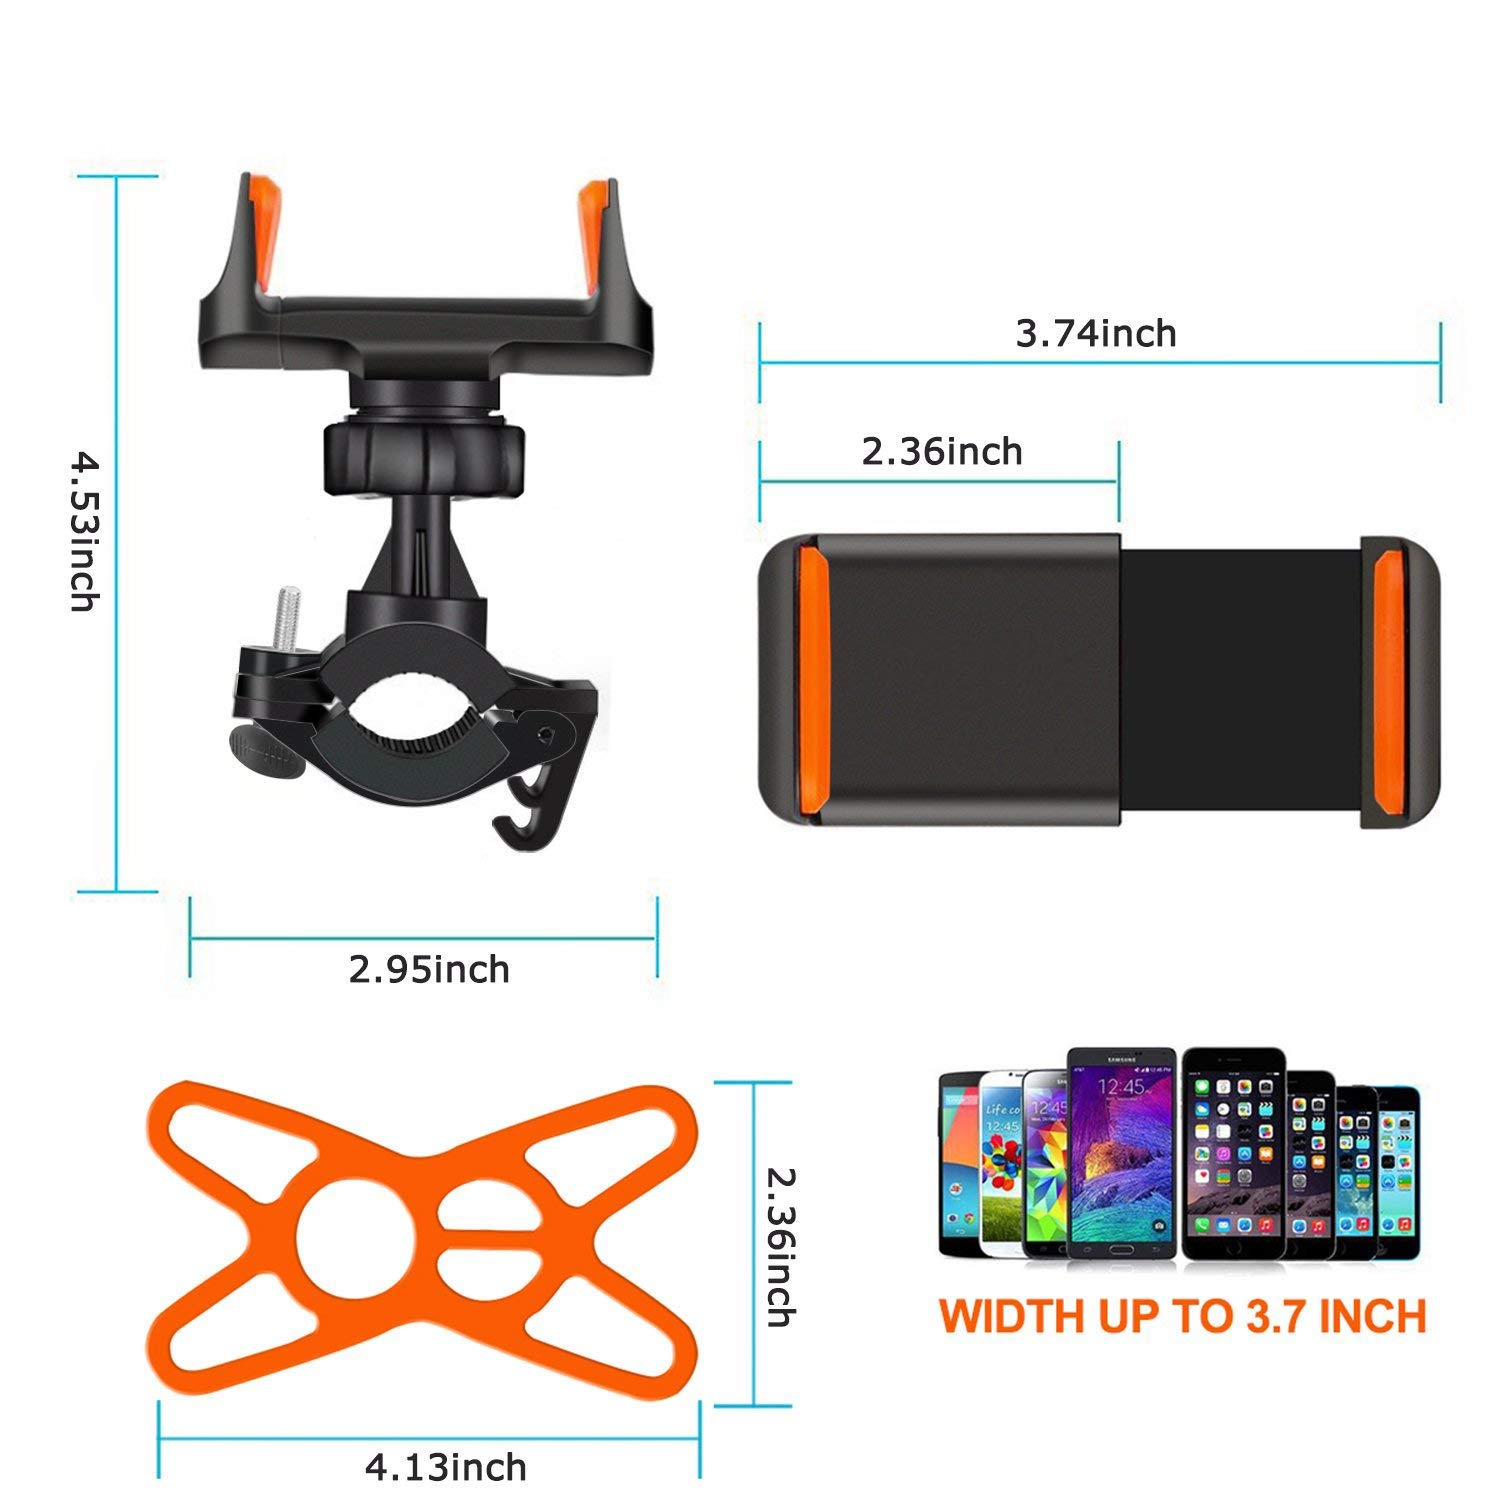 JDIBEST Bike Phone Mount/Mountain Bike Mount, Bicycle Holder, Universal Phone Bicycle Rack Handlebar/Motorcycle Holder Cradle for iPhone, Android Phone, Boating GPS, 360 Degrees Rotatable, Holds Phon